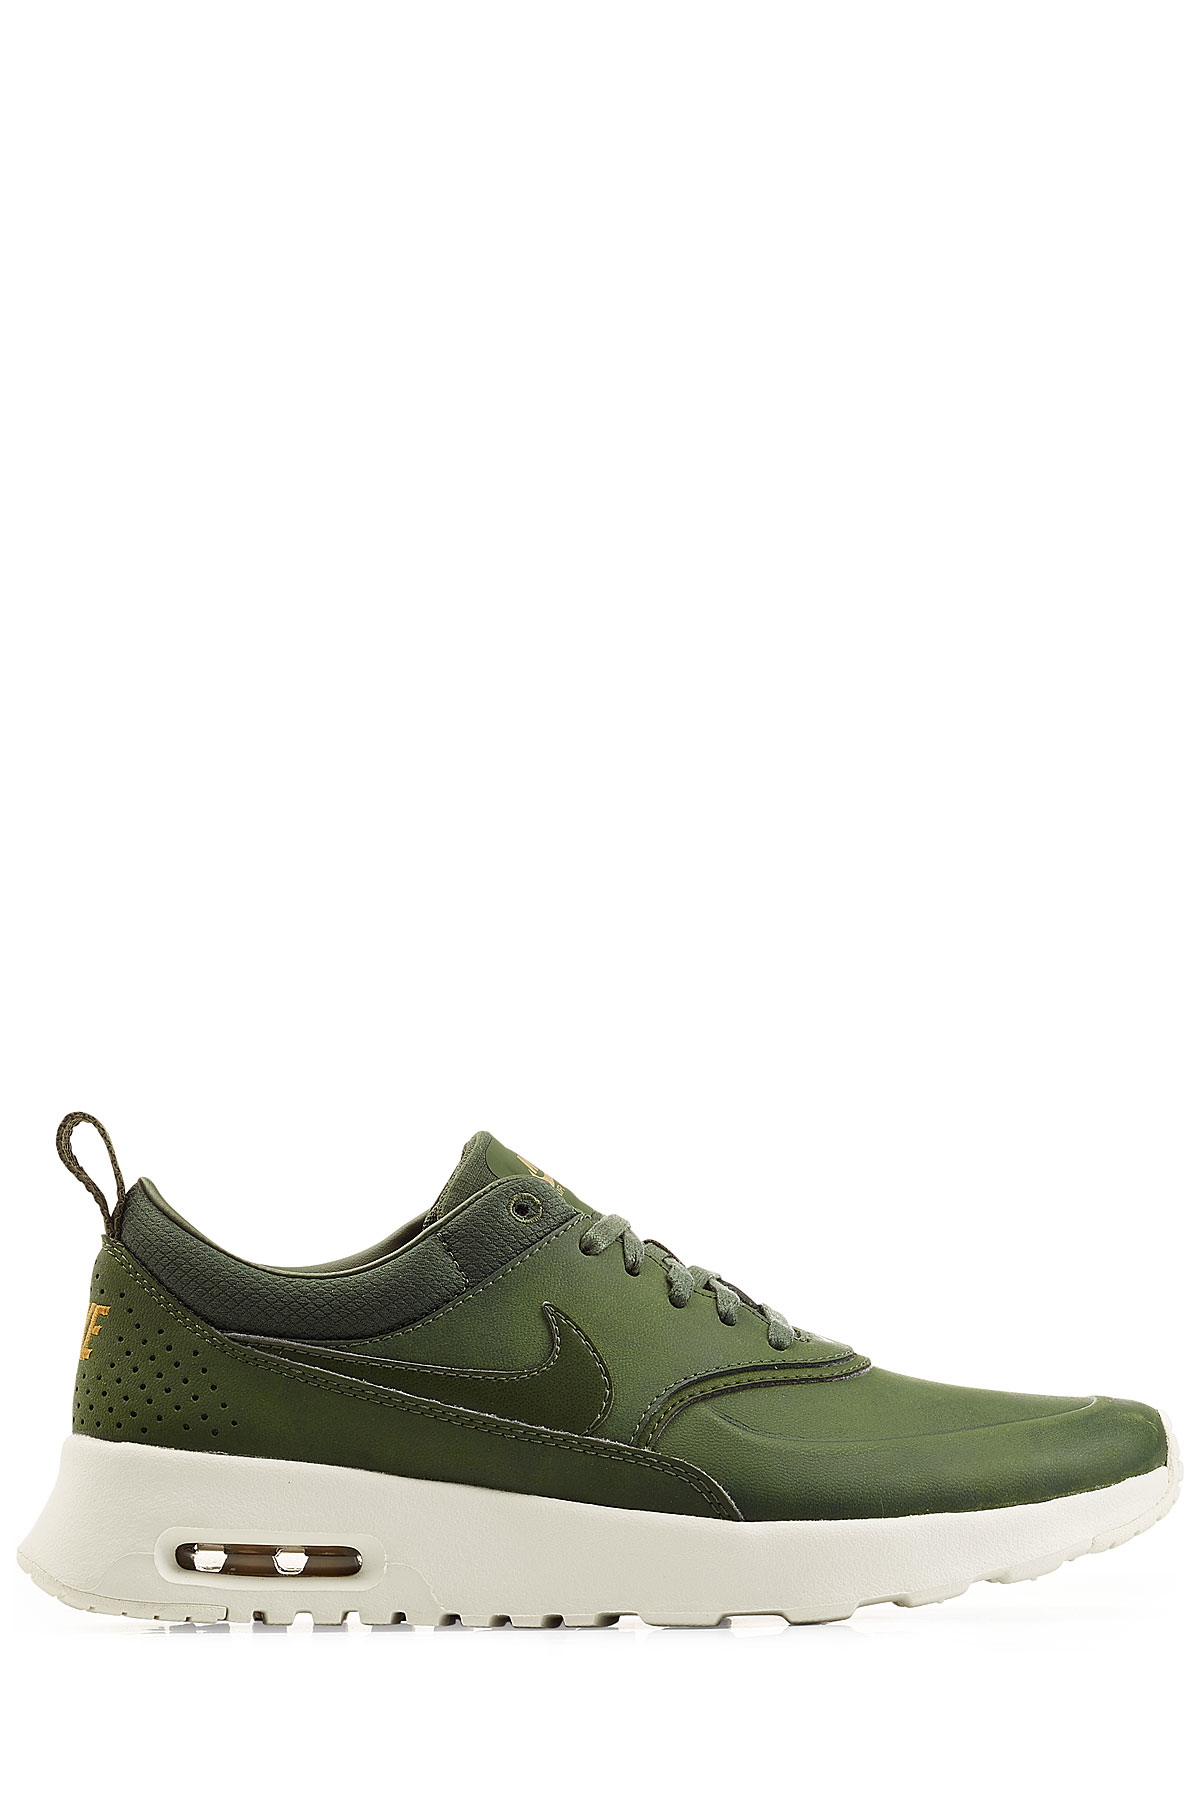 63750e110710 ... real lyst nike air max thea premium leather sneakers green in green  82ece bceac